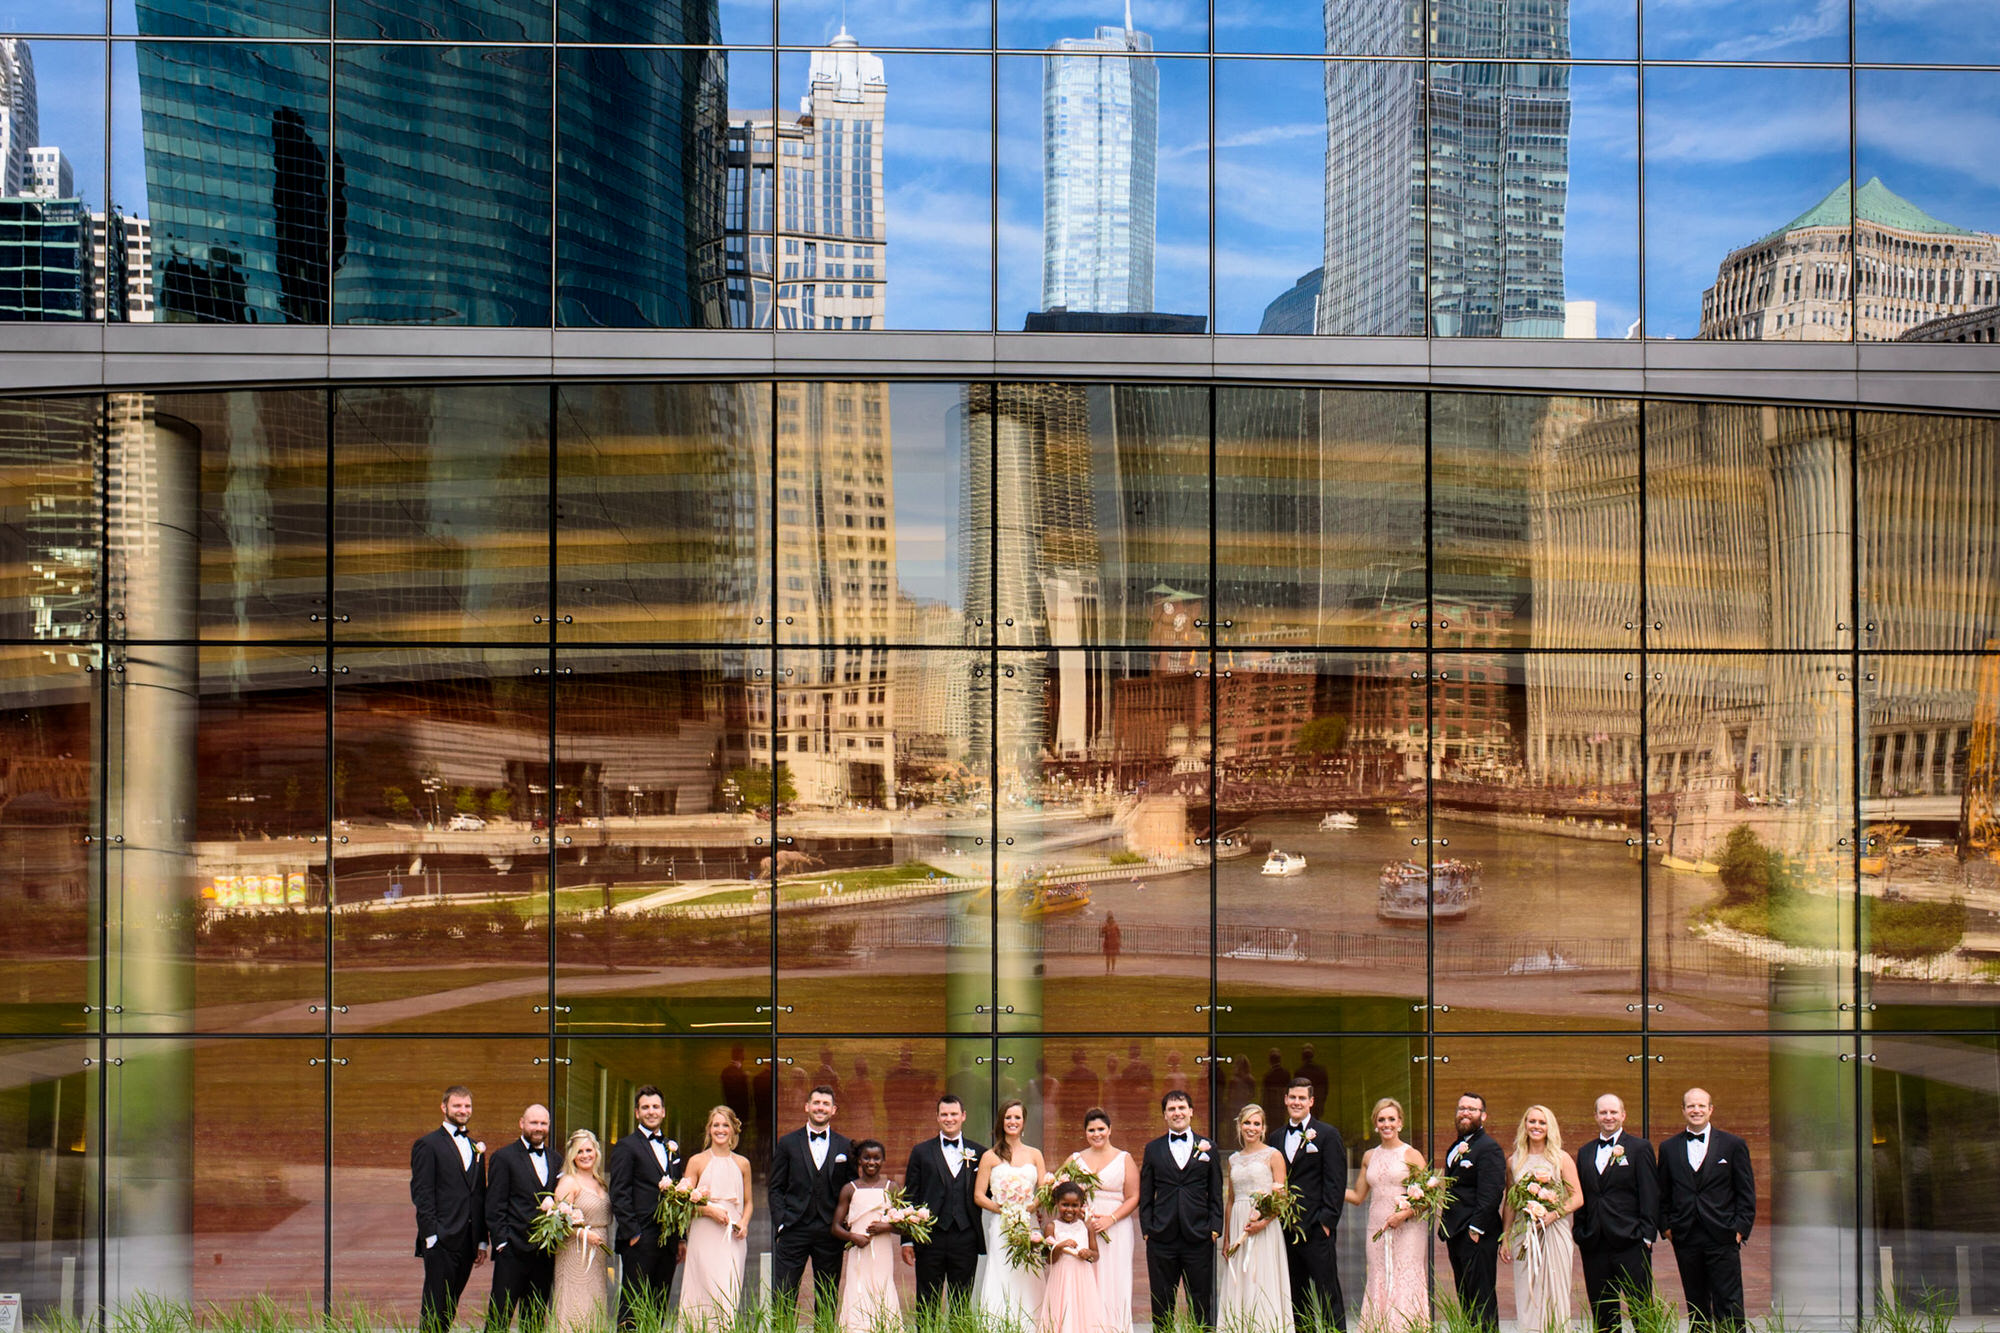 Chicago Wedding Party Posed in front of building on the riverwalk